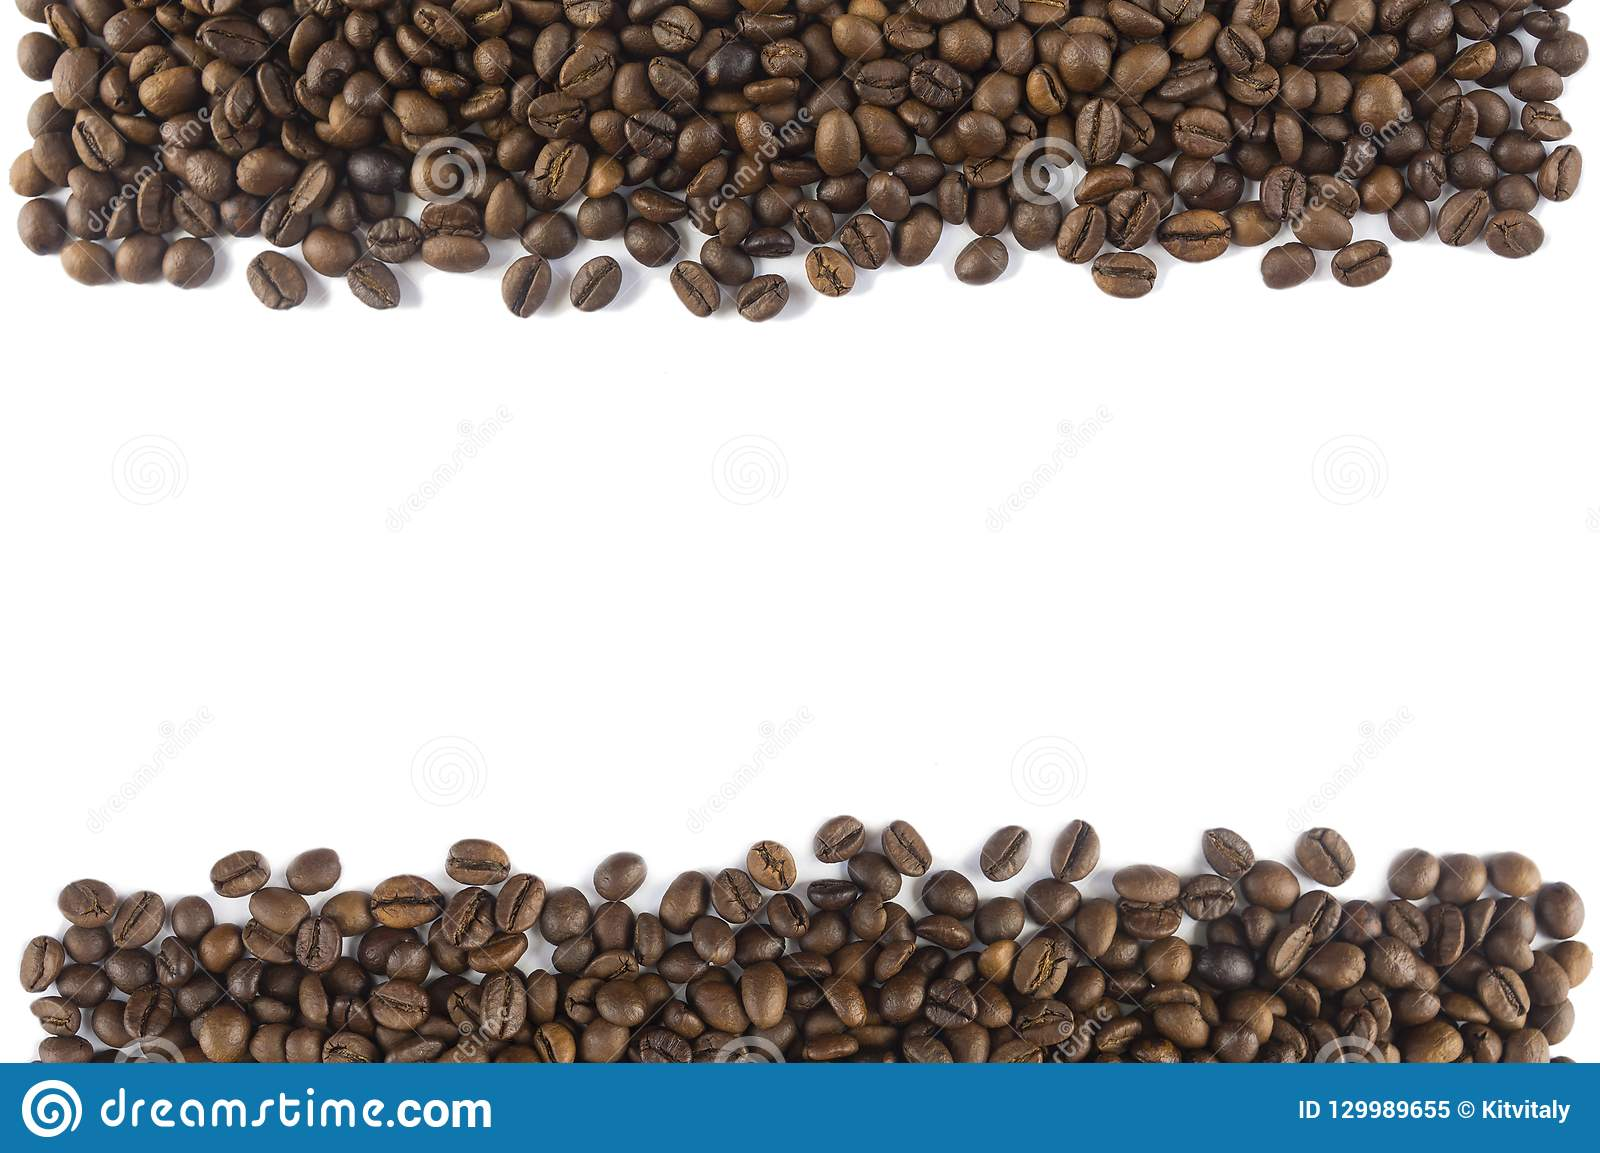 Coffee Beans At Border Of Image With Copy Space For Text ...